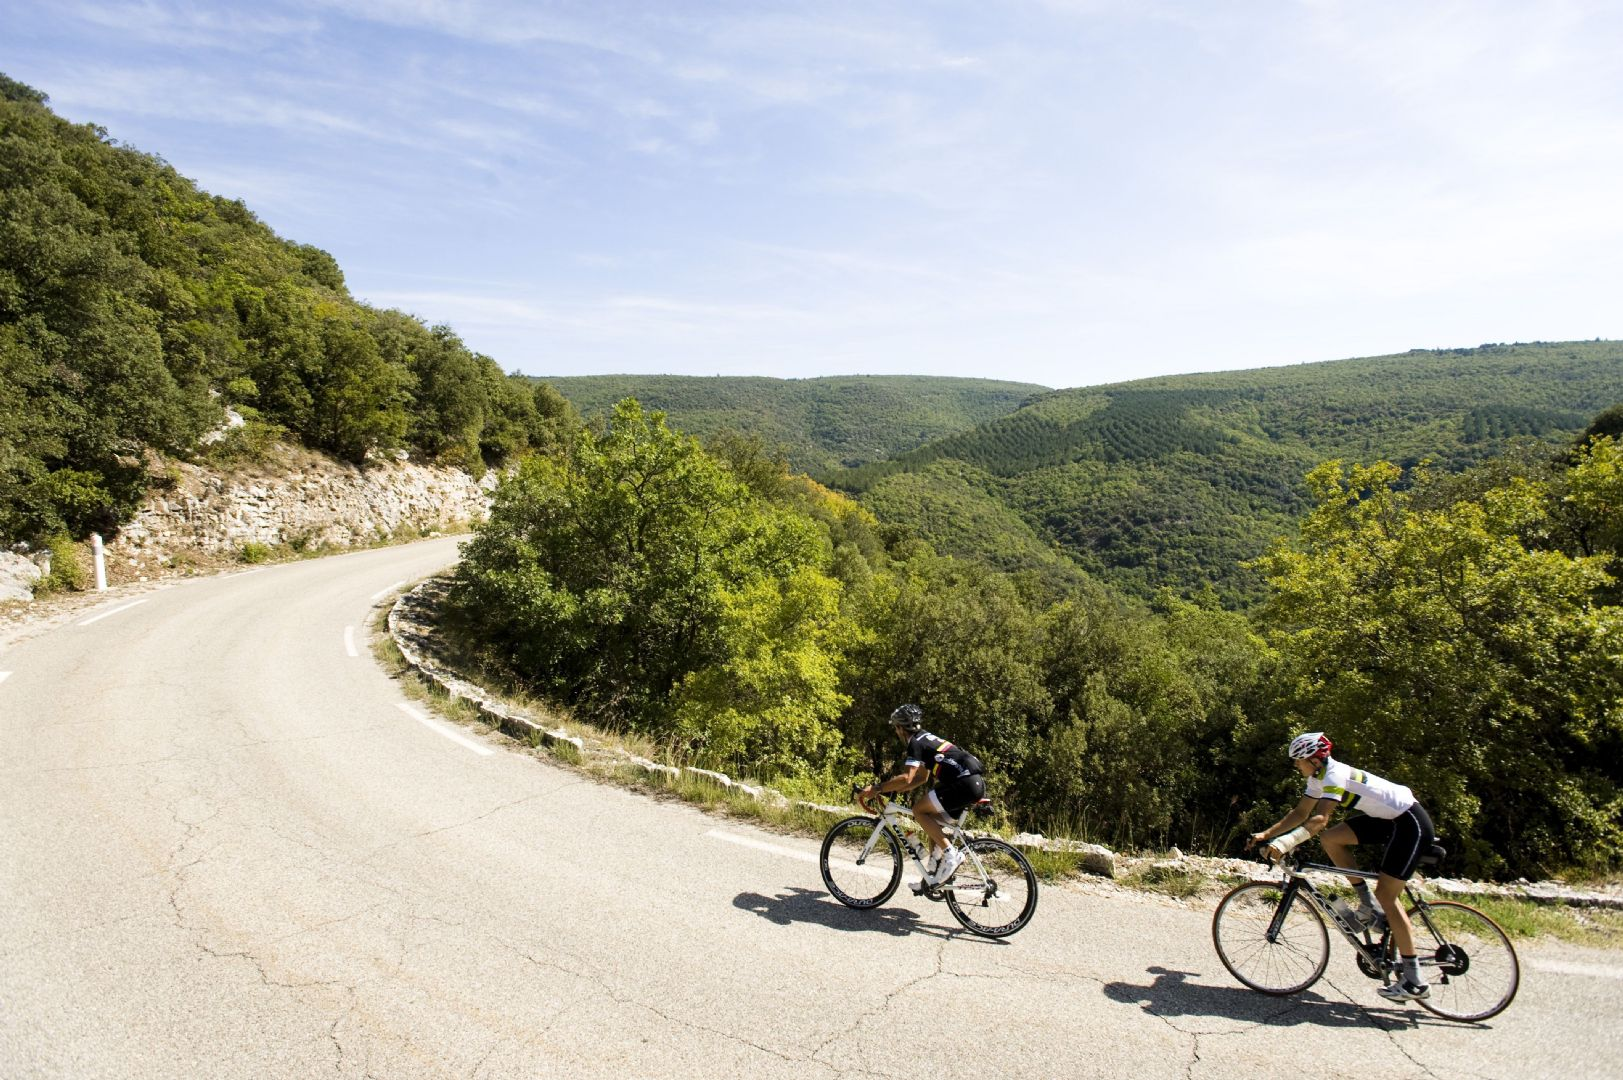 ventoux_day5-88.jpg - France - Haute Dordogne - Guided Road Cycling Holiday - Road Cycling